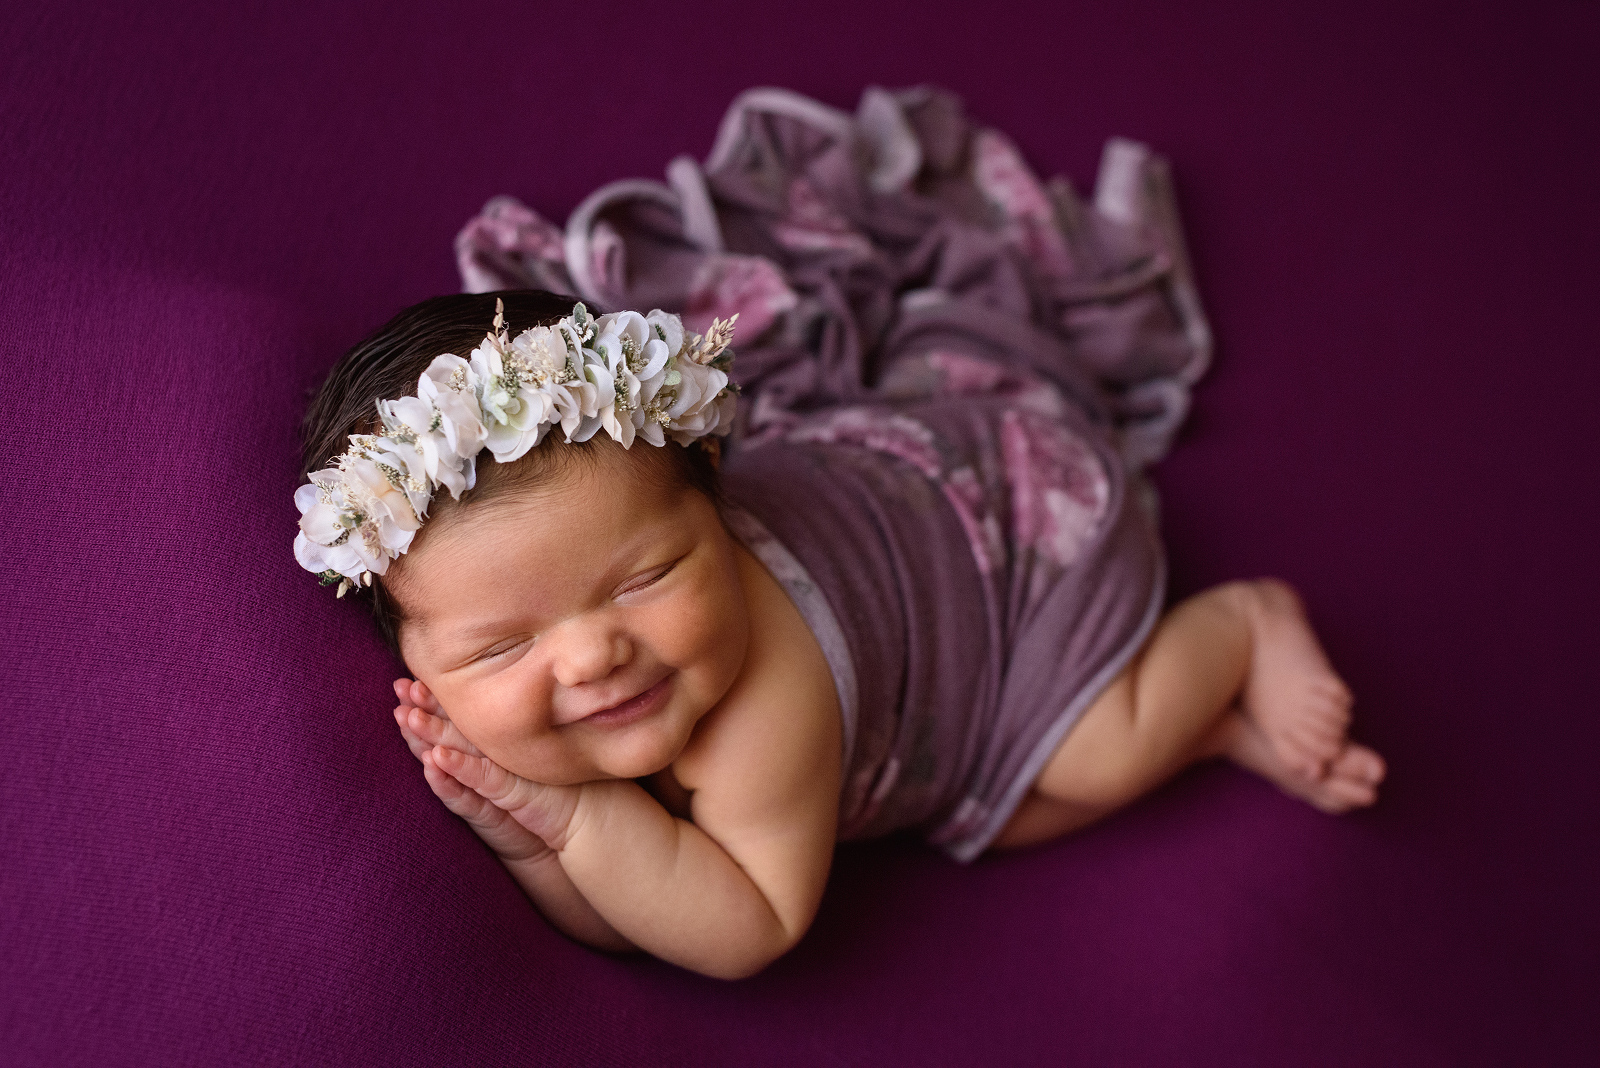 Best photo of baby girl with the biggest smile wrapped in a magenta floral wrap wearing a white floral crown